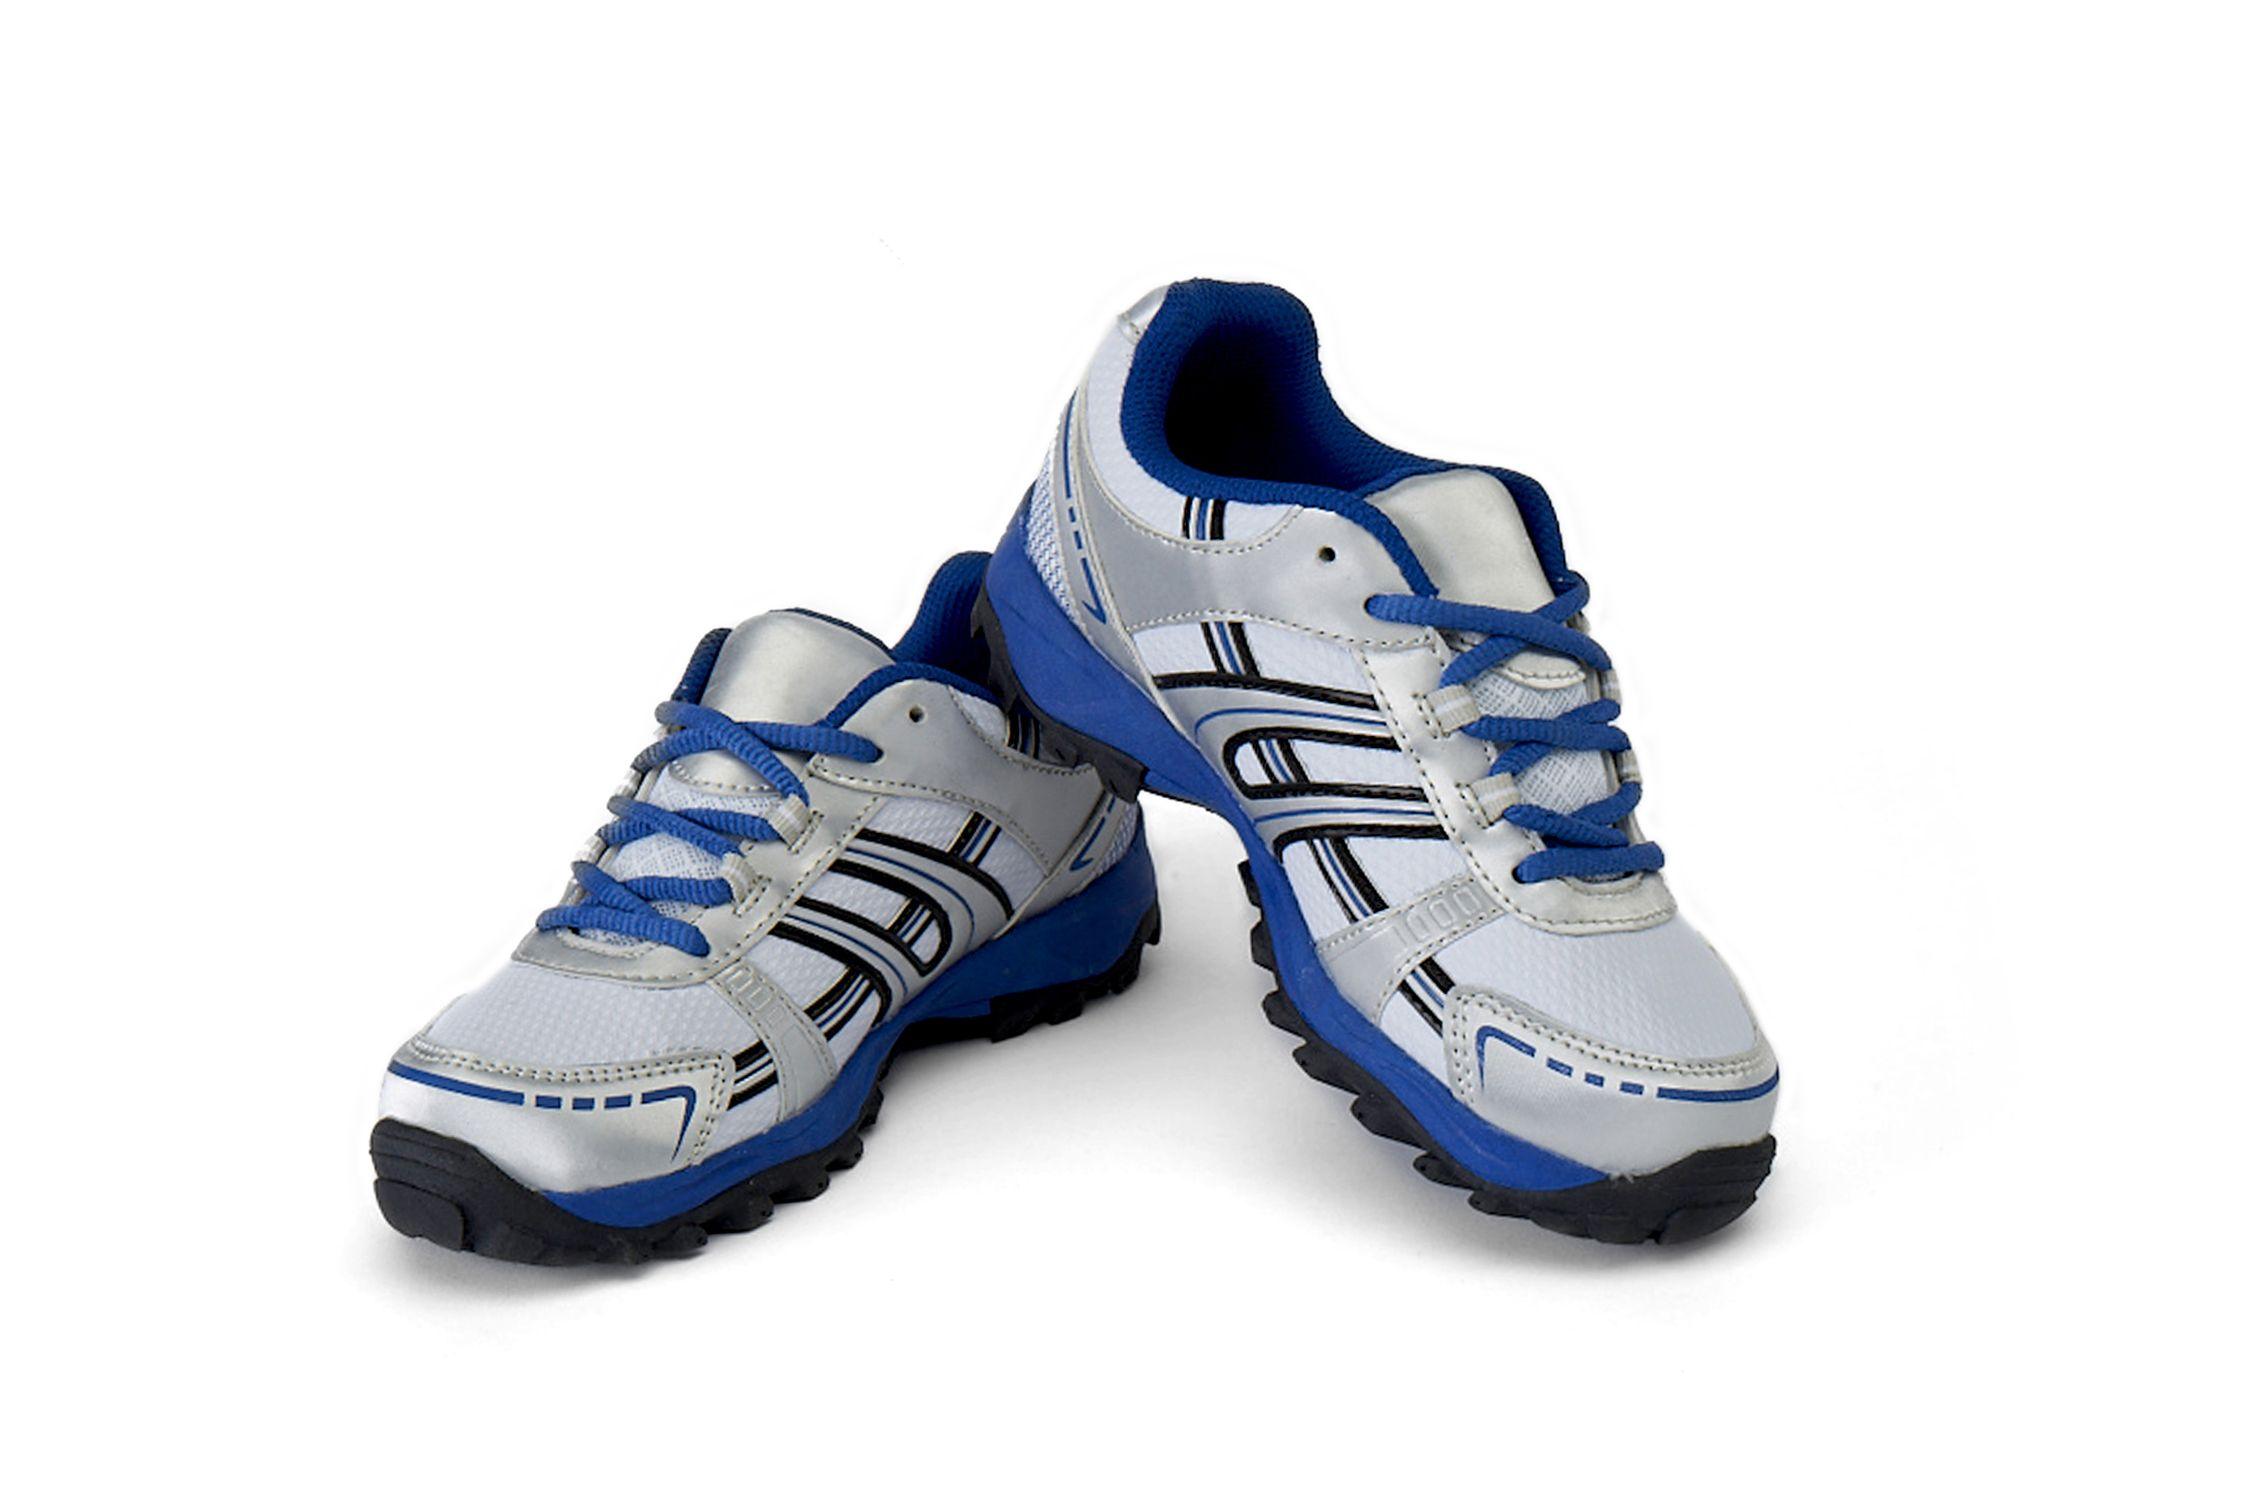 Boys MTA 'Joey' Shoes (available only in stores) Click image to see weekly ad